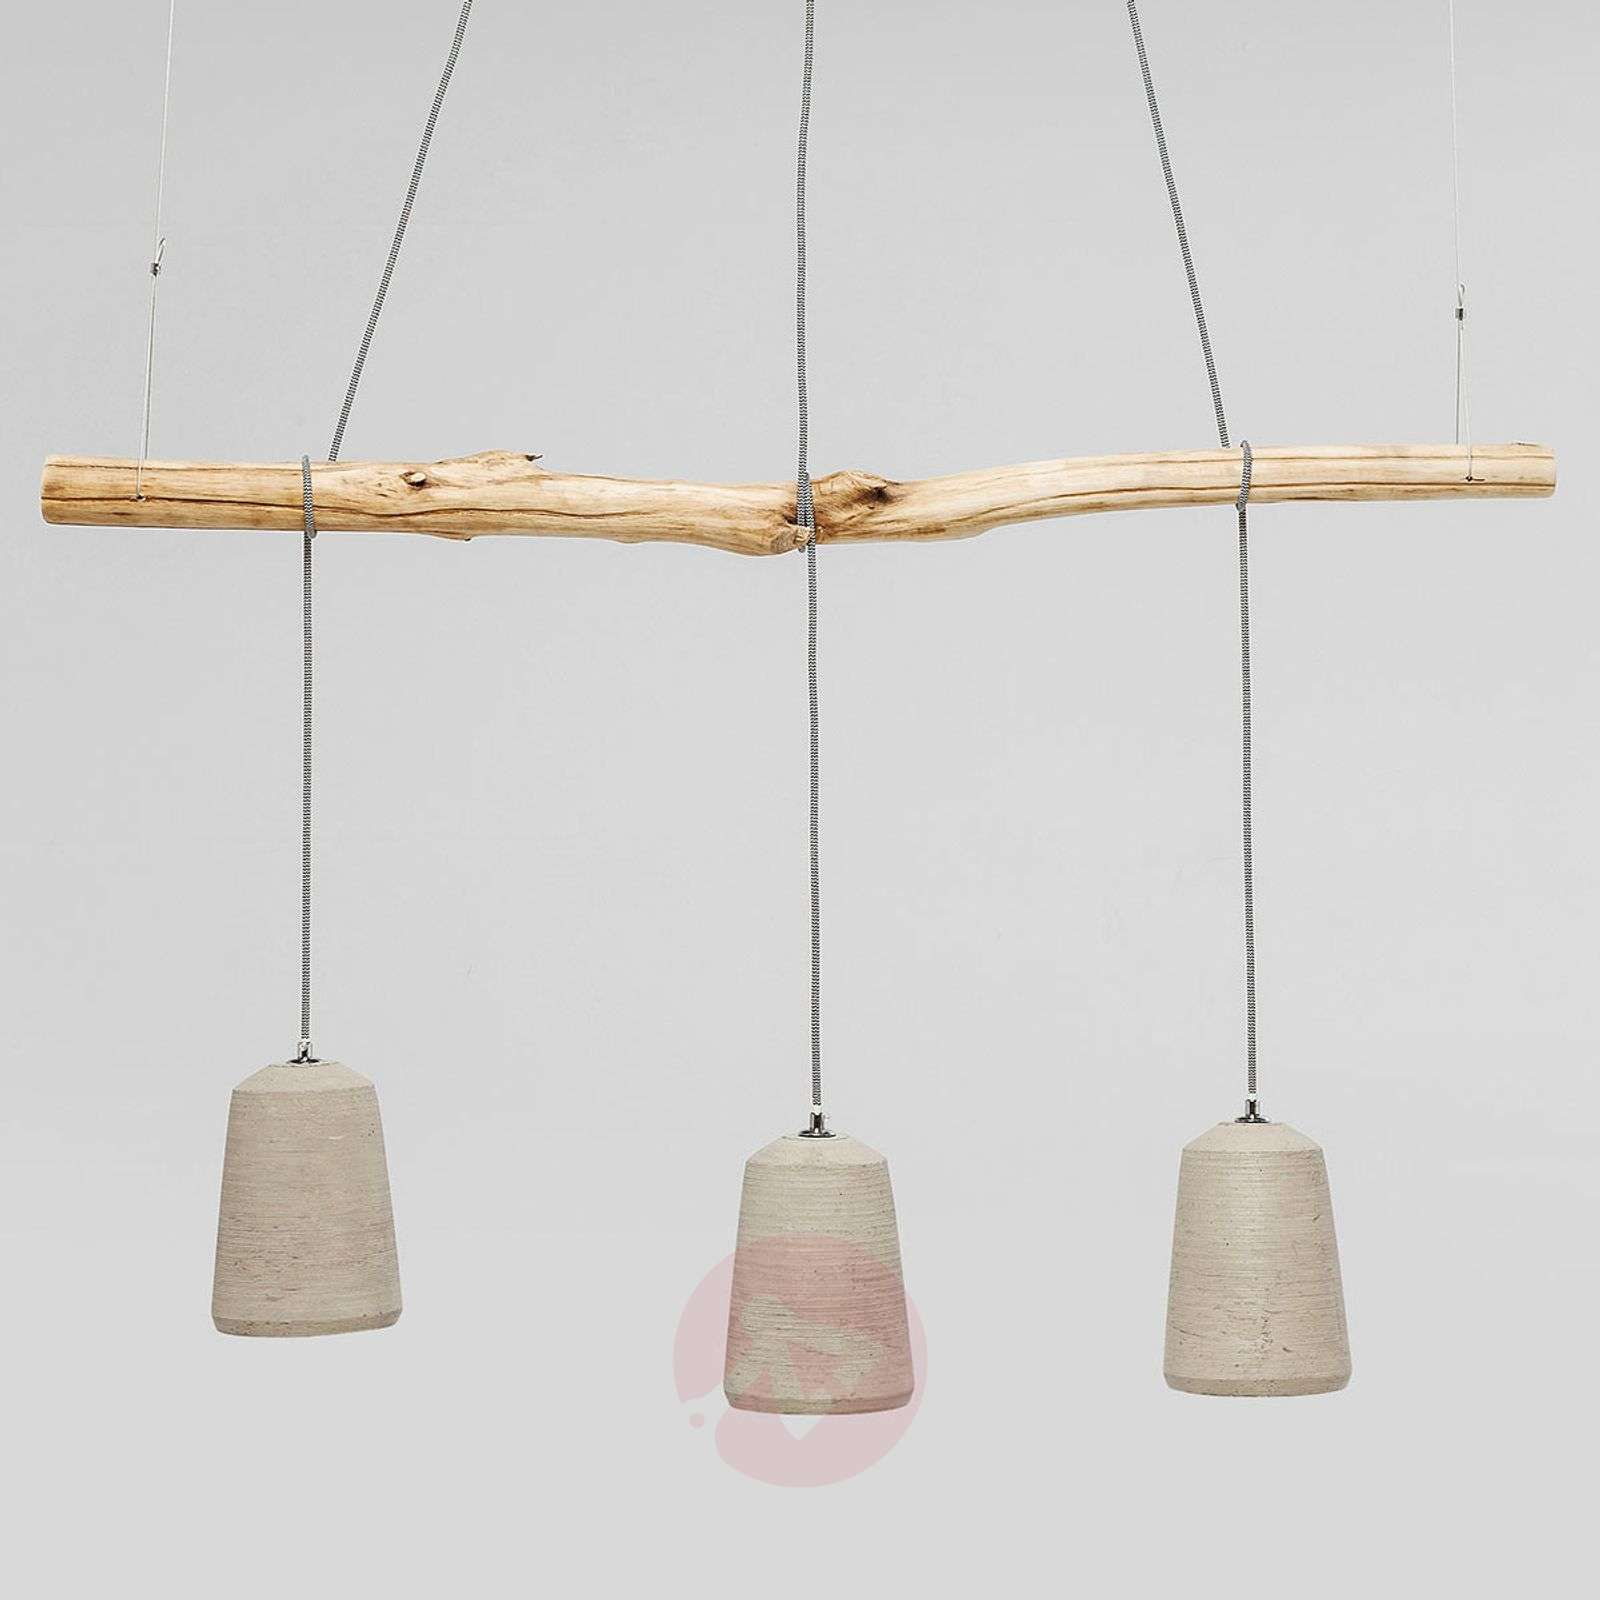 KARE Dining Concrete hanging light-5517540-01